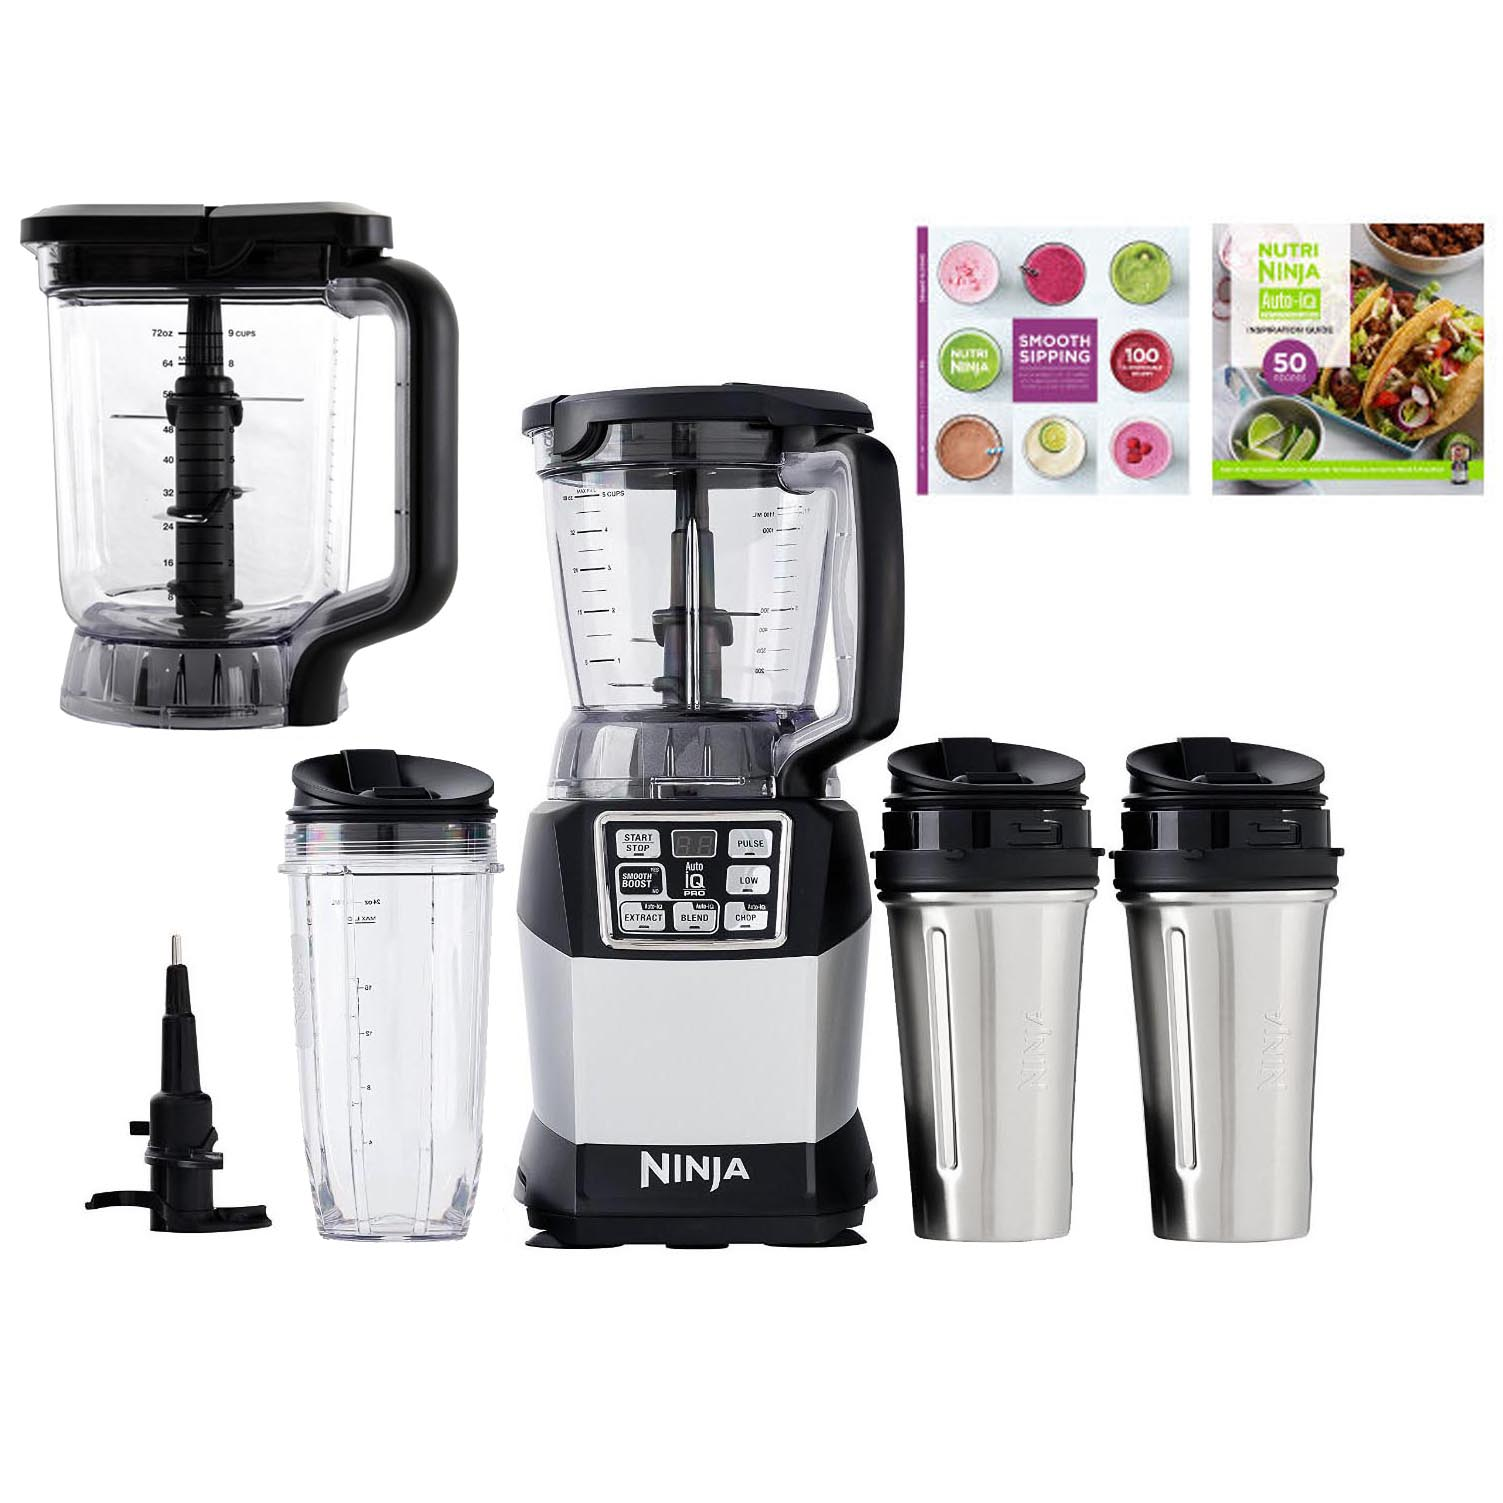 Nutri ninja blender system with auto iq technology - Ninja Auto Iq Blender System W 40 Oz Bowl 72 Oz Pitcher 3 Cups Cook Book Walmart Com